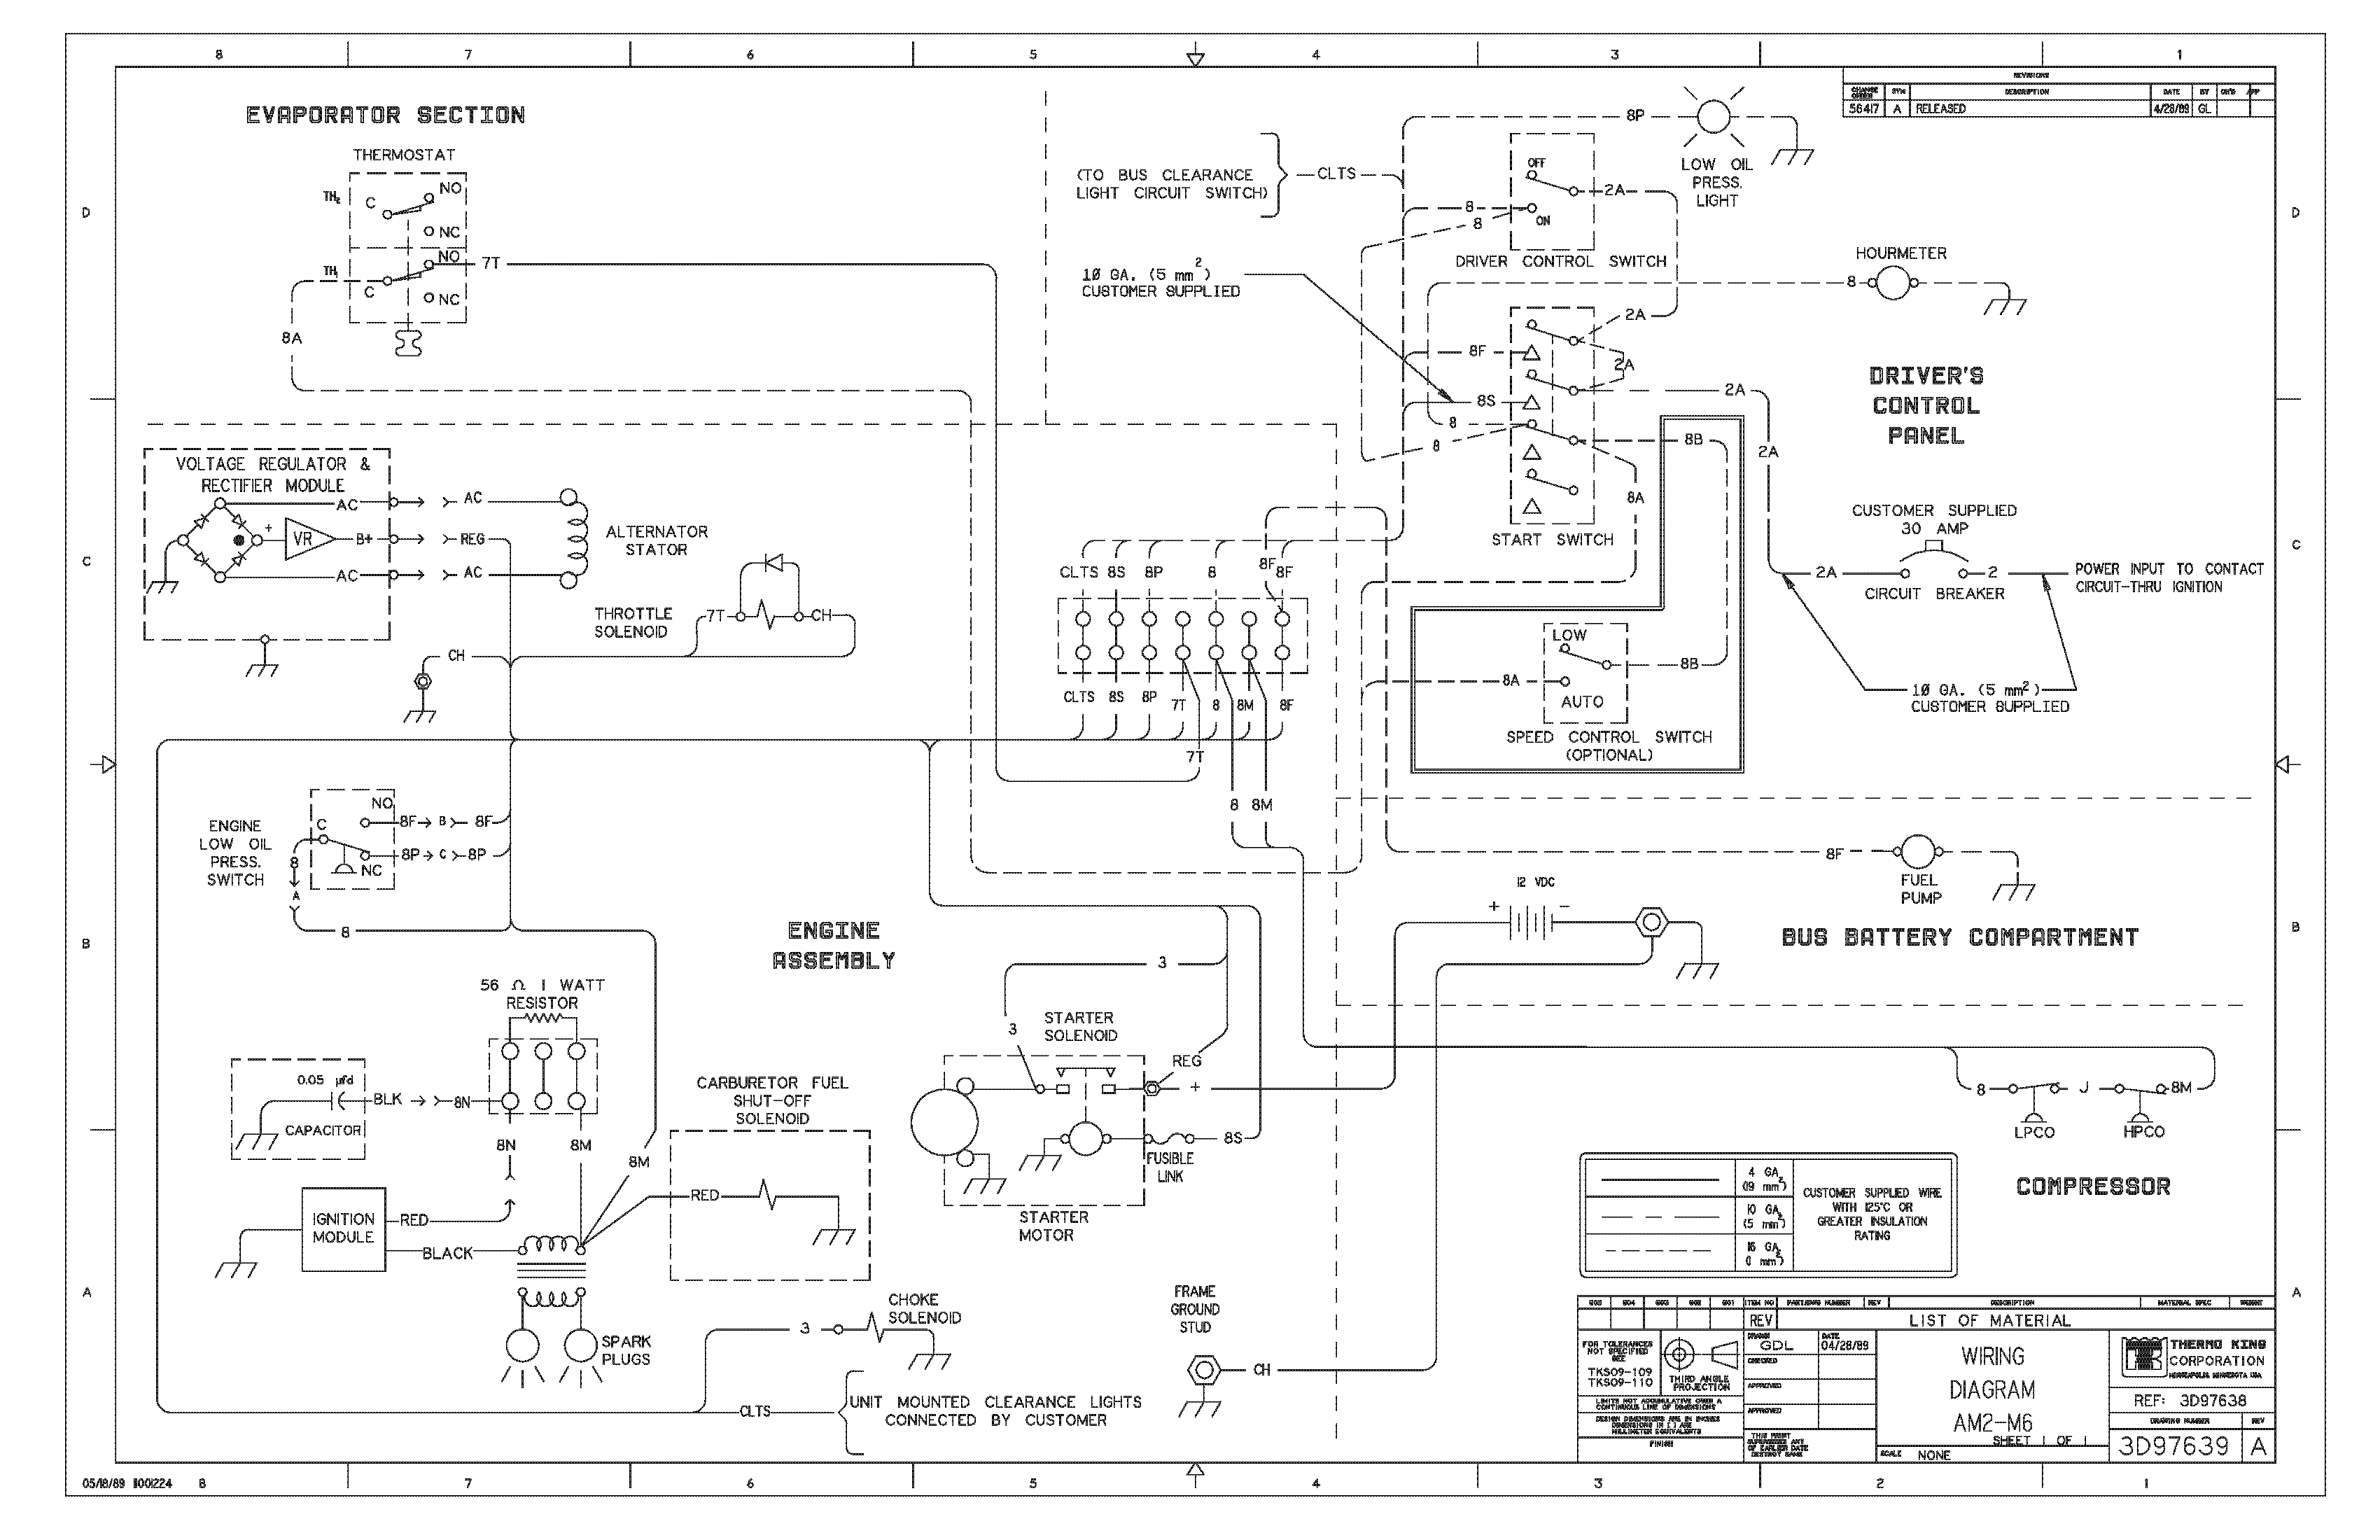 3d97639_a thermo king wiring diagram wiring schematics and wiring diagrams thermo king wiring diagrams at gsmx.co